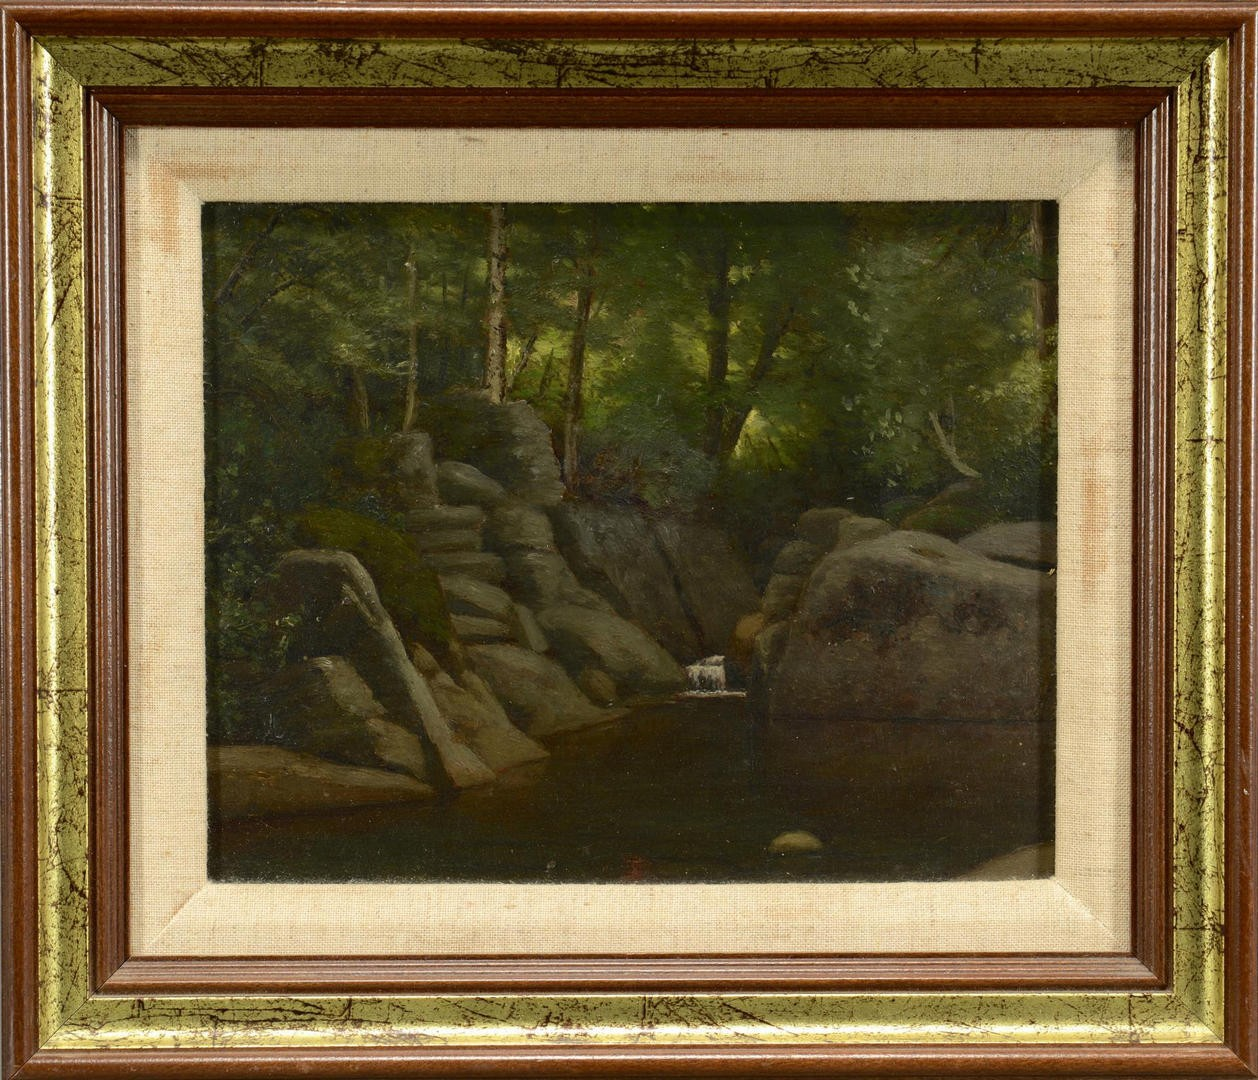 Lot 3594279: White Mountains NH landscape